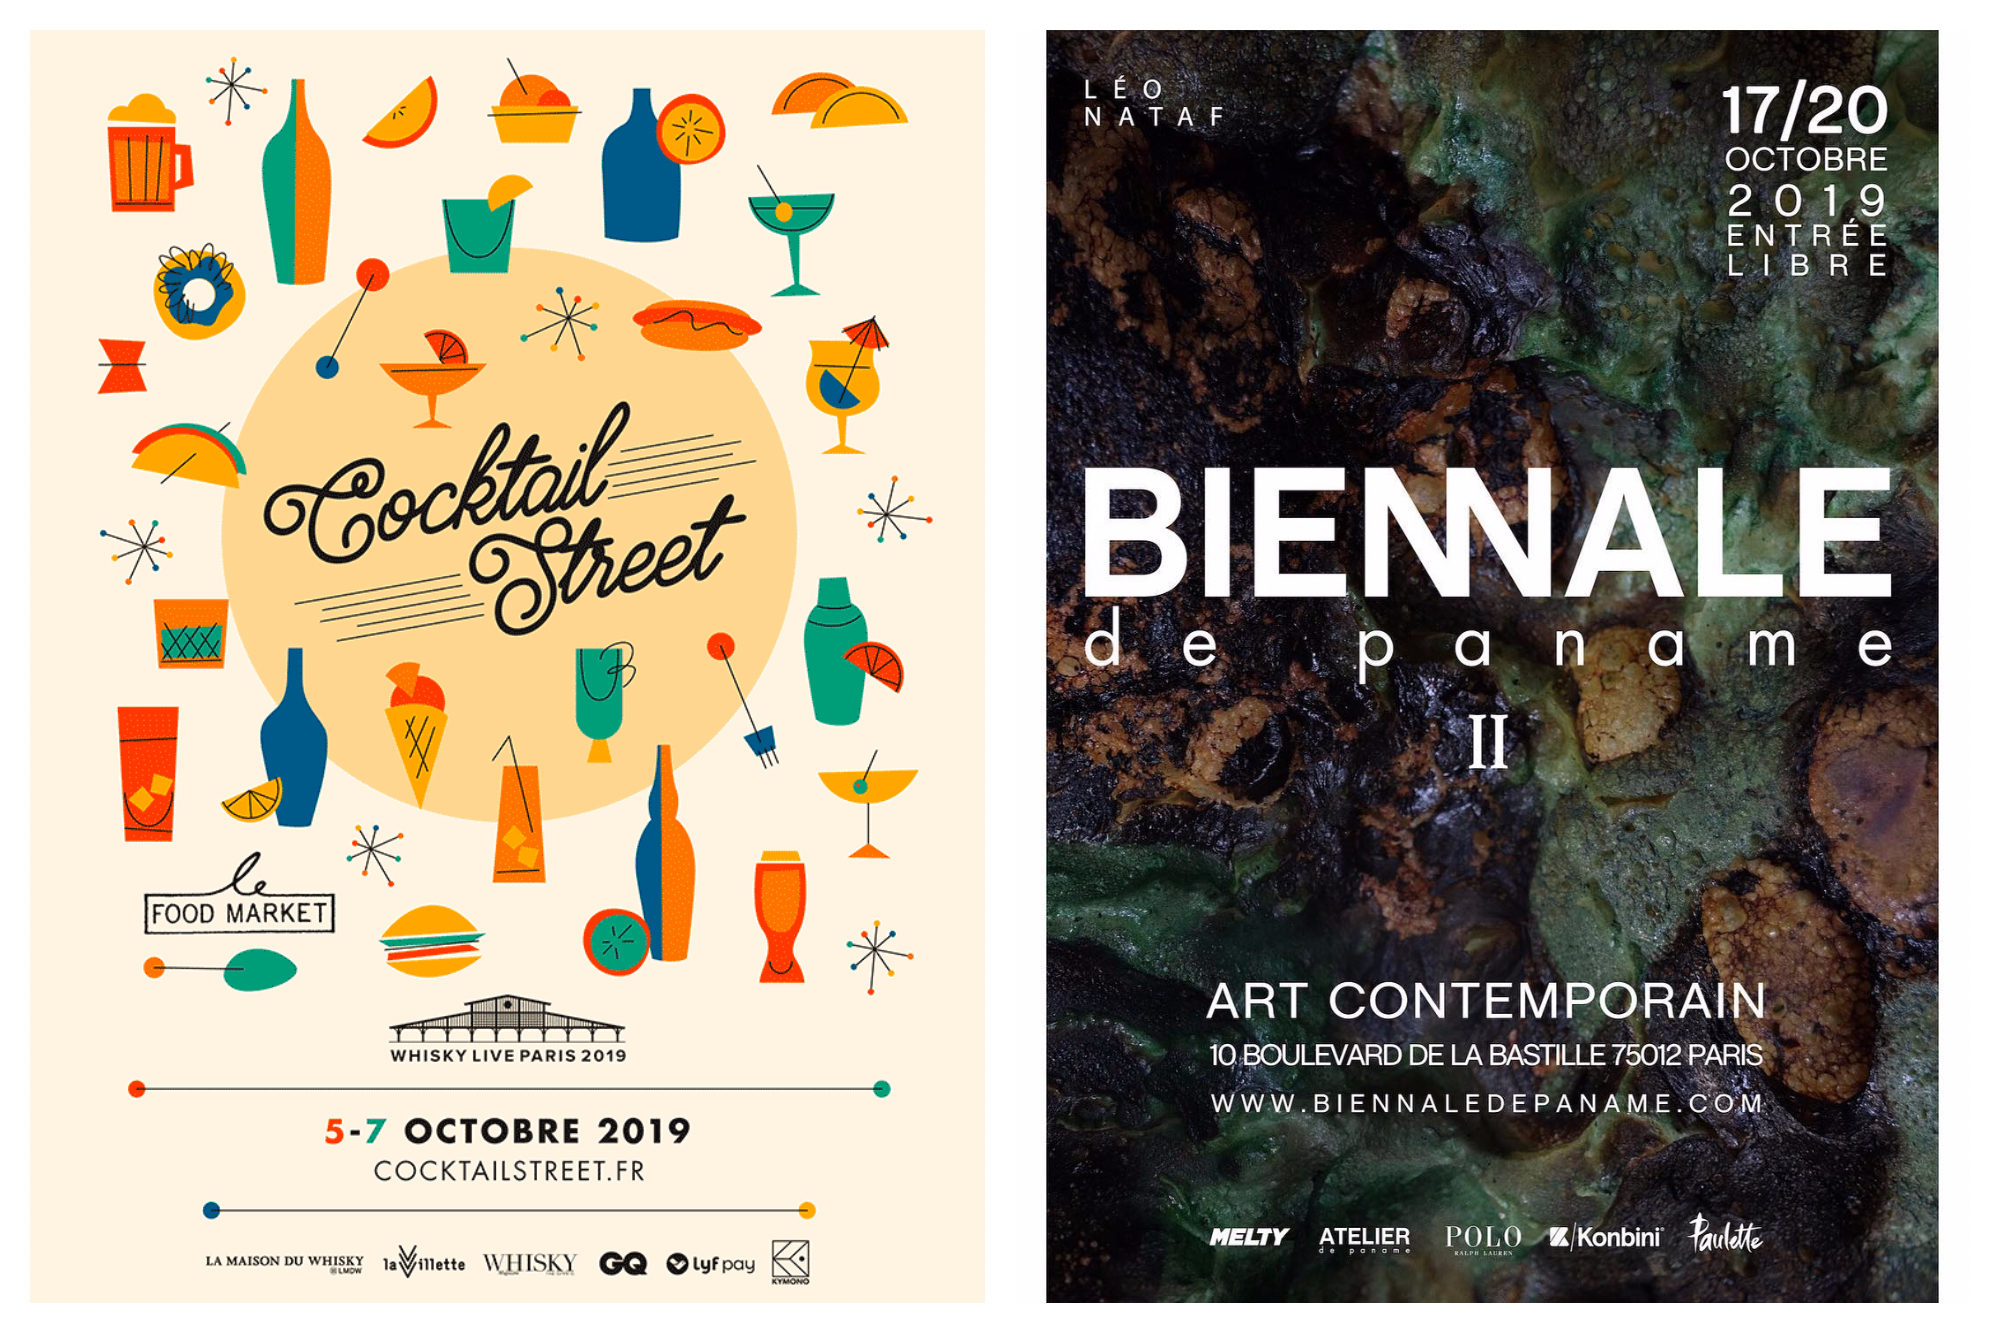 A poster for the Cocktail Street event in Paris this October (left) and a poster for the Biennale de Paname art event (right).